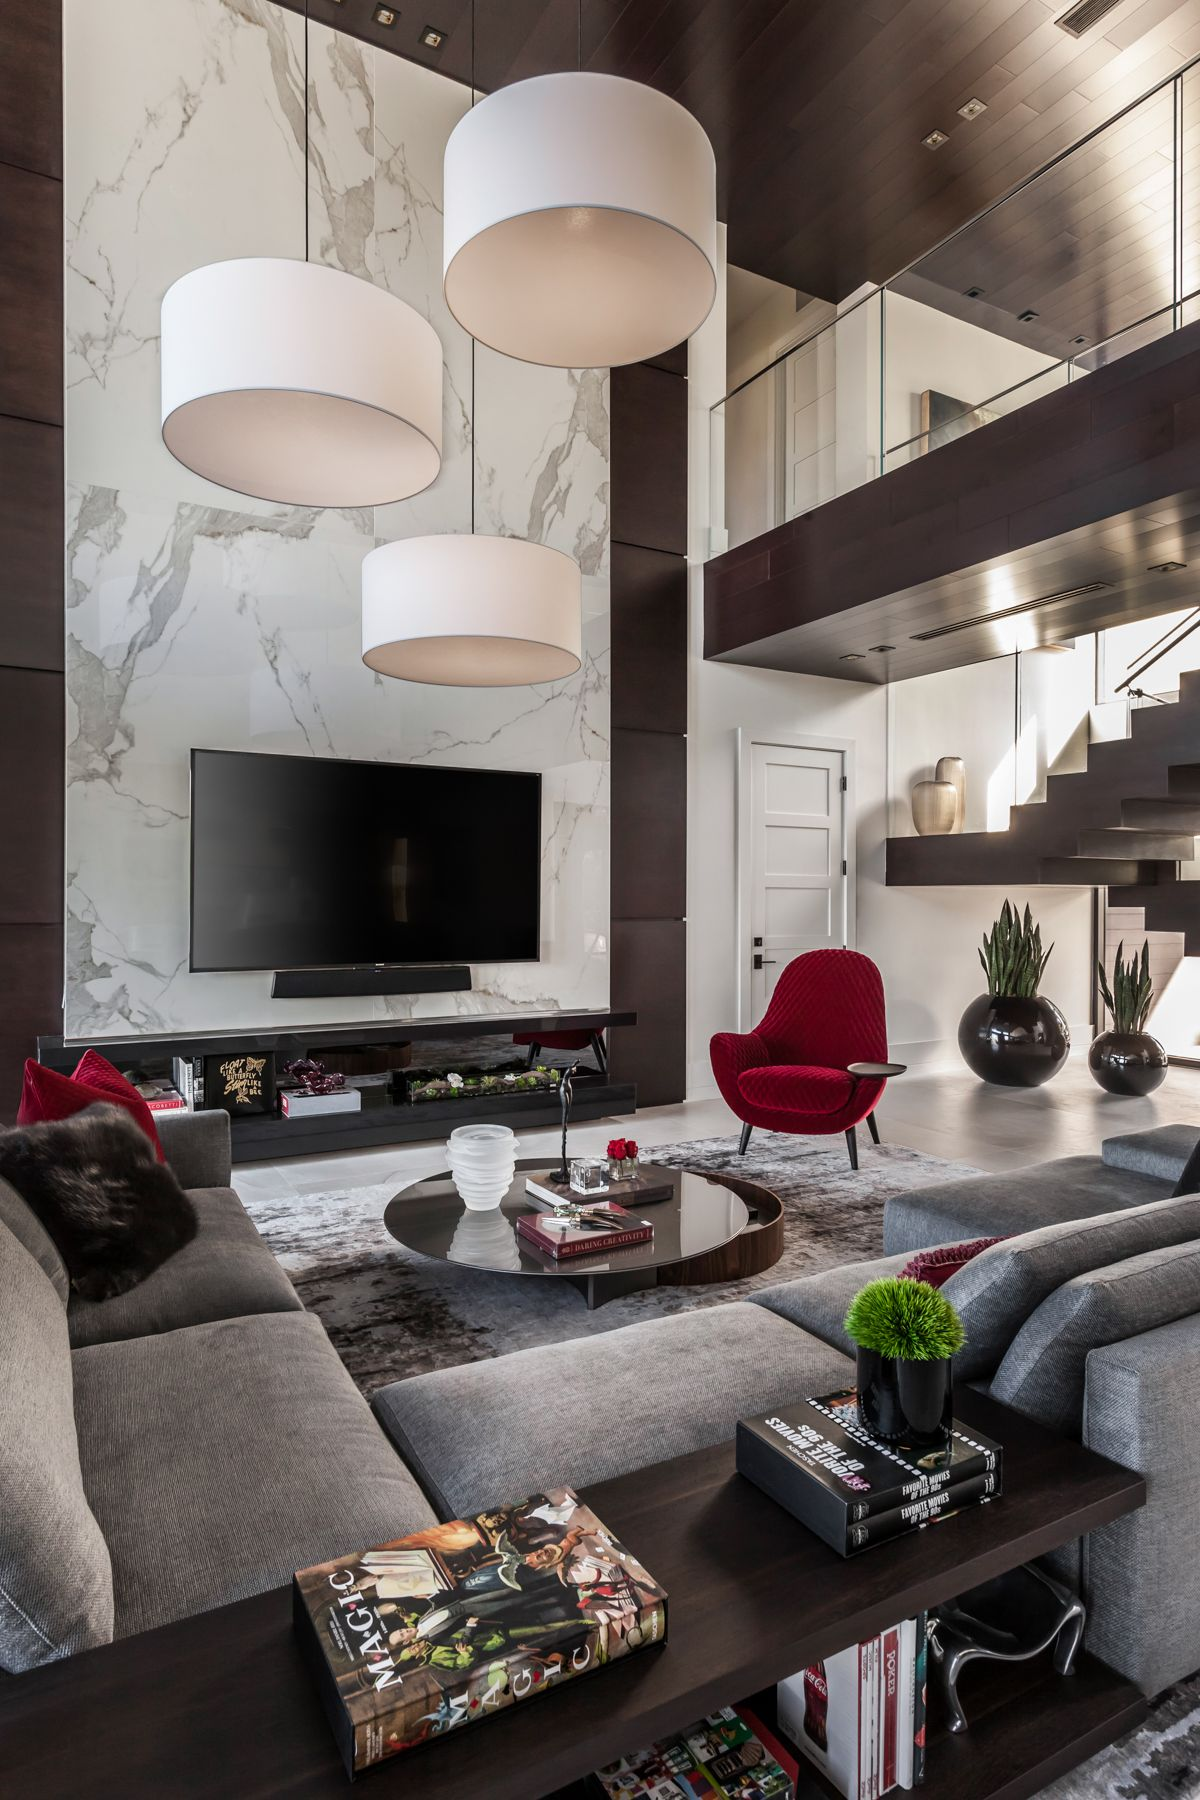 Image De Decoration Interieur De Maison _mg_2018 | interieur maison design, interieur maison